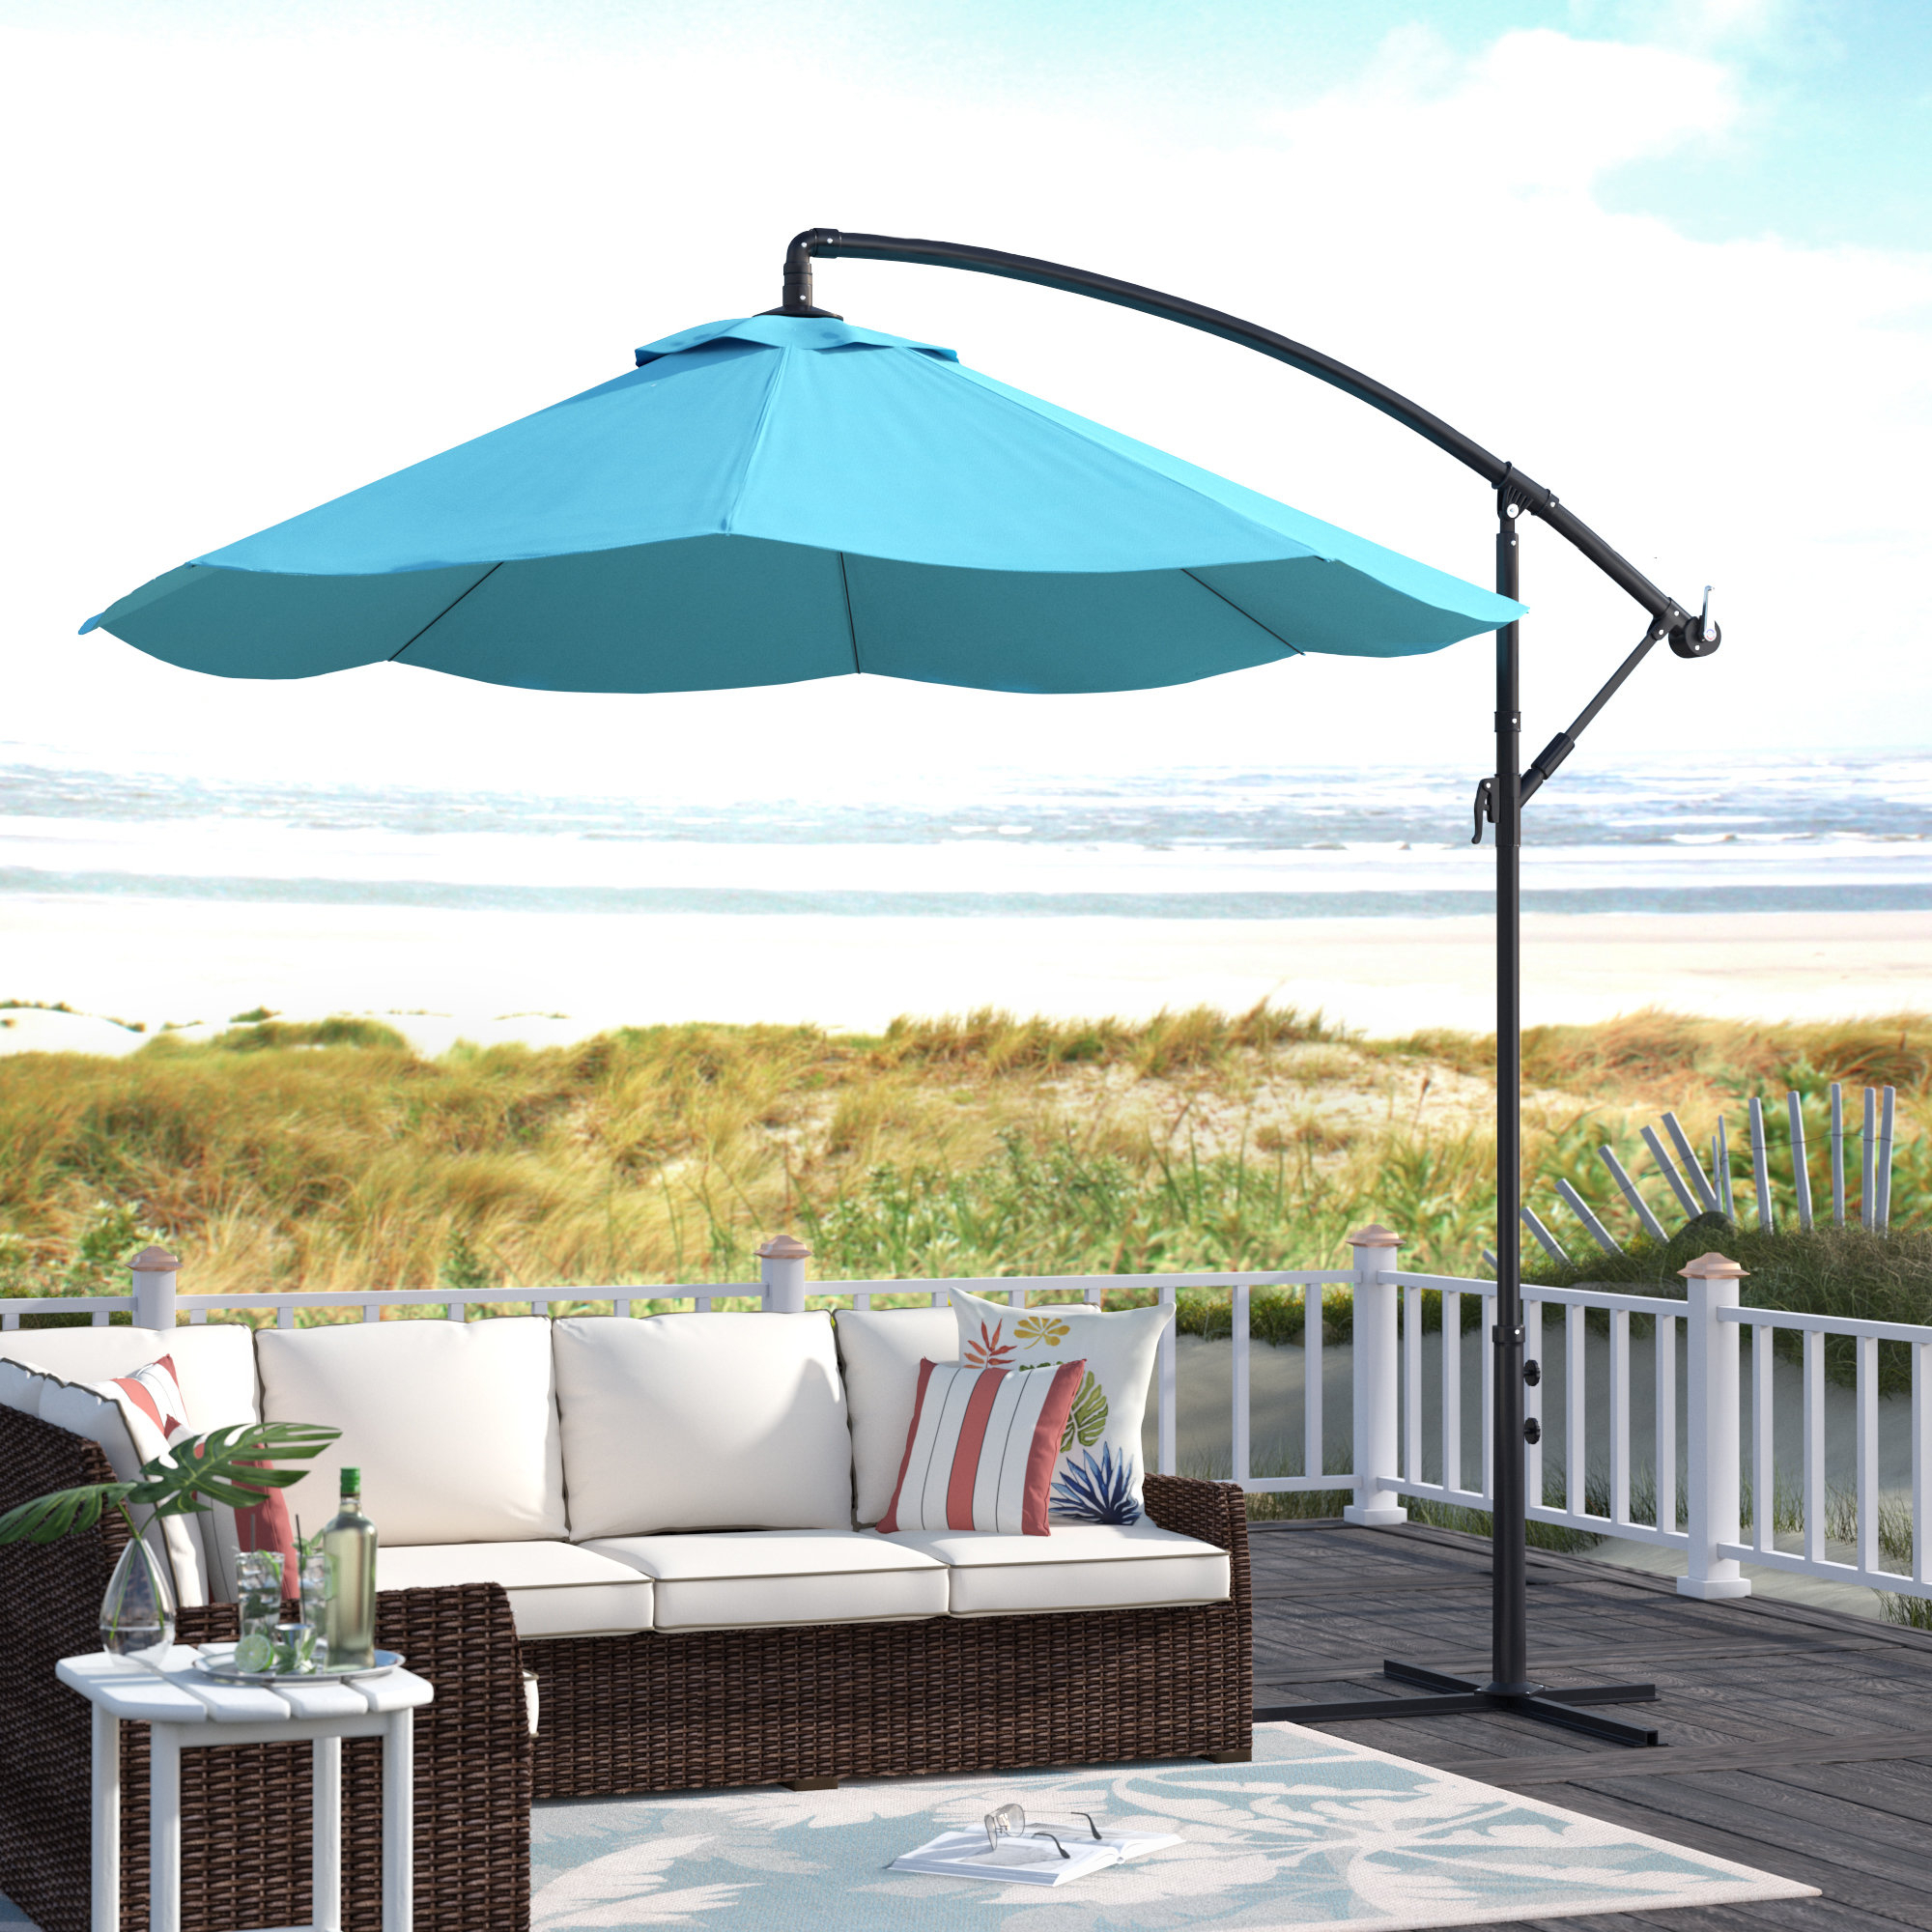 Widely Used Vassalboro 10' Cantilever Umbrella Within Gribble 3Cantilever Umbrellas (View 20 of 20)